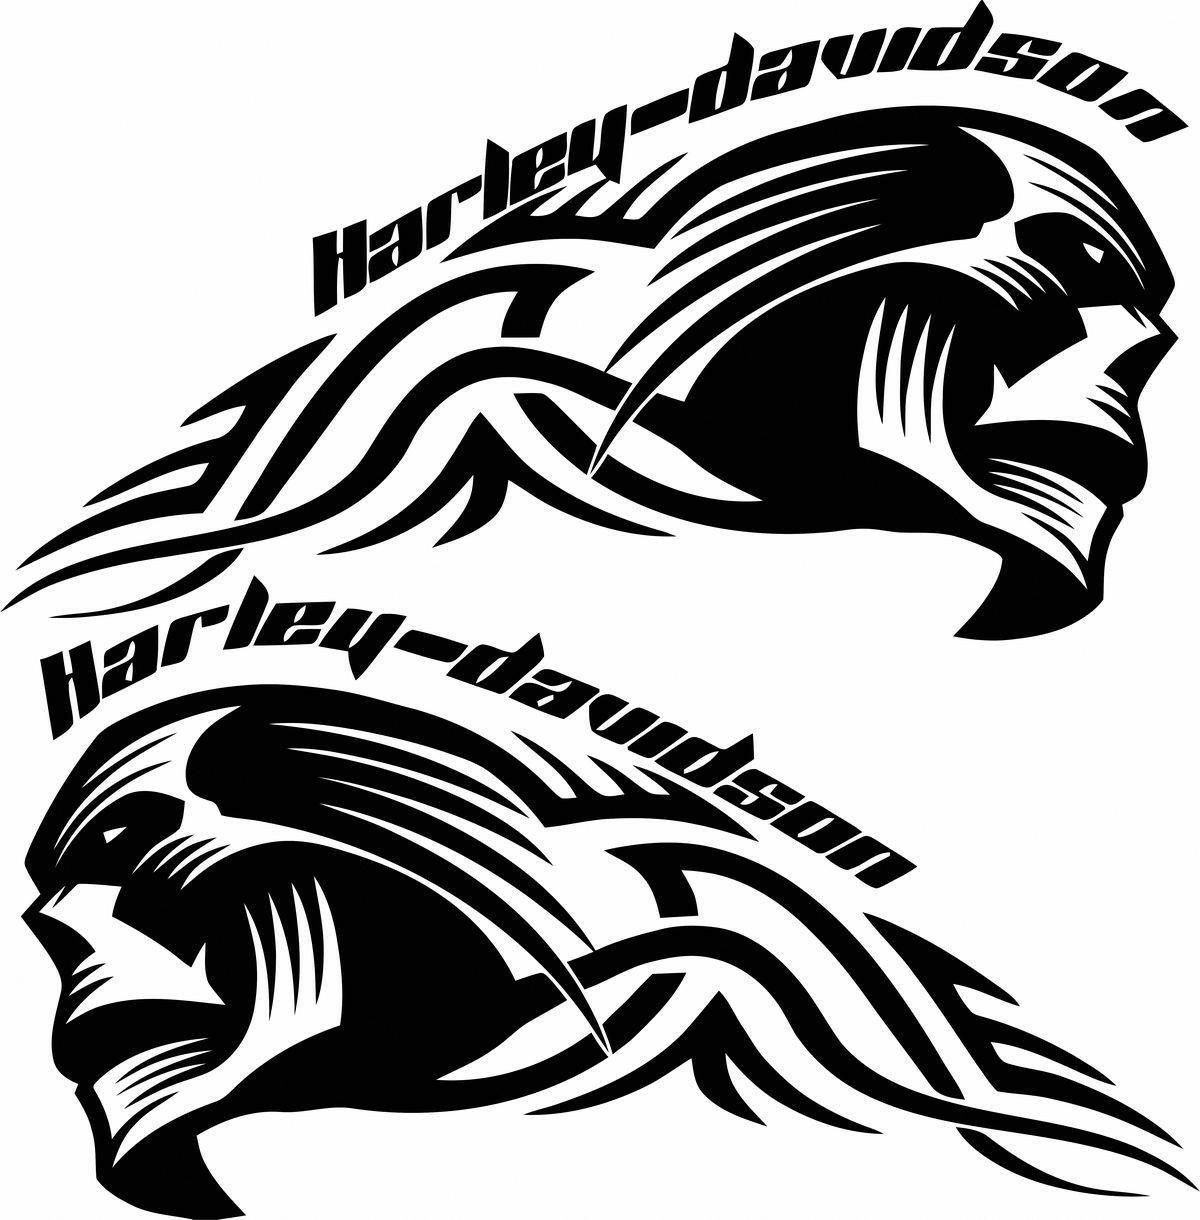 Harley Davidson Decal 5 To 15 Depending On Size And Color Amounts Visit Baybeegraphics Co Harley Davidson Decals Harley Davidson Tattoos Harley Davidson Art [ 1220 x 1200 Pixel ]